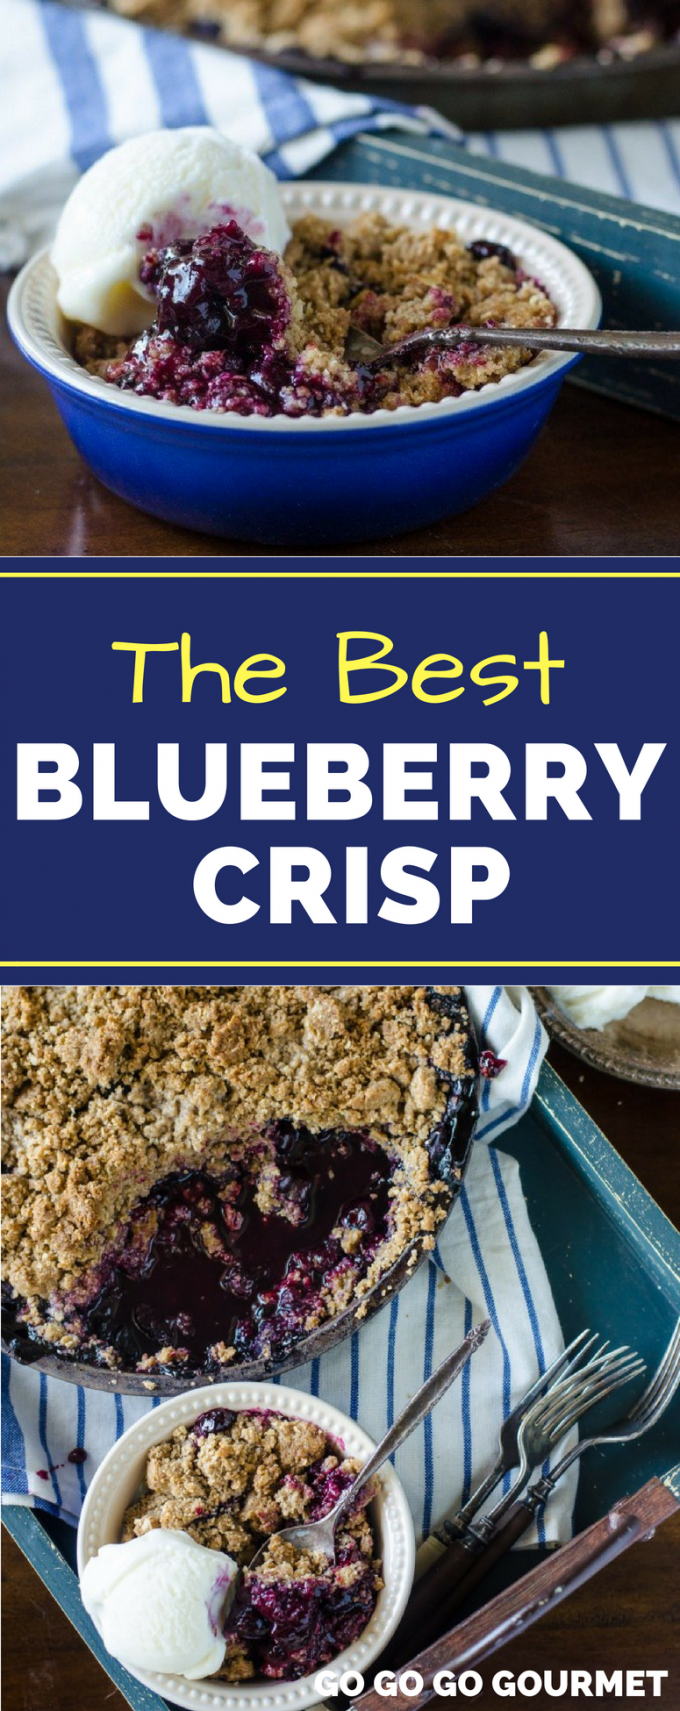 Move over Pioneer Woman, this is the BEST Blueberry Crisp recipe! Comparable to a cobbler, but with a delicious crumble on top, this dessert is perfect for summer! #bestblueberrycrisprecipe #blueberryrecipes #summerdessertrecipes #gogogogourmet via @gogogogourmet